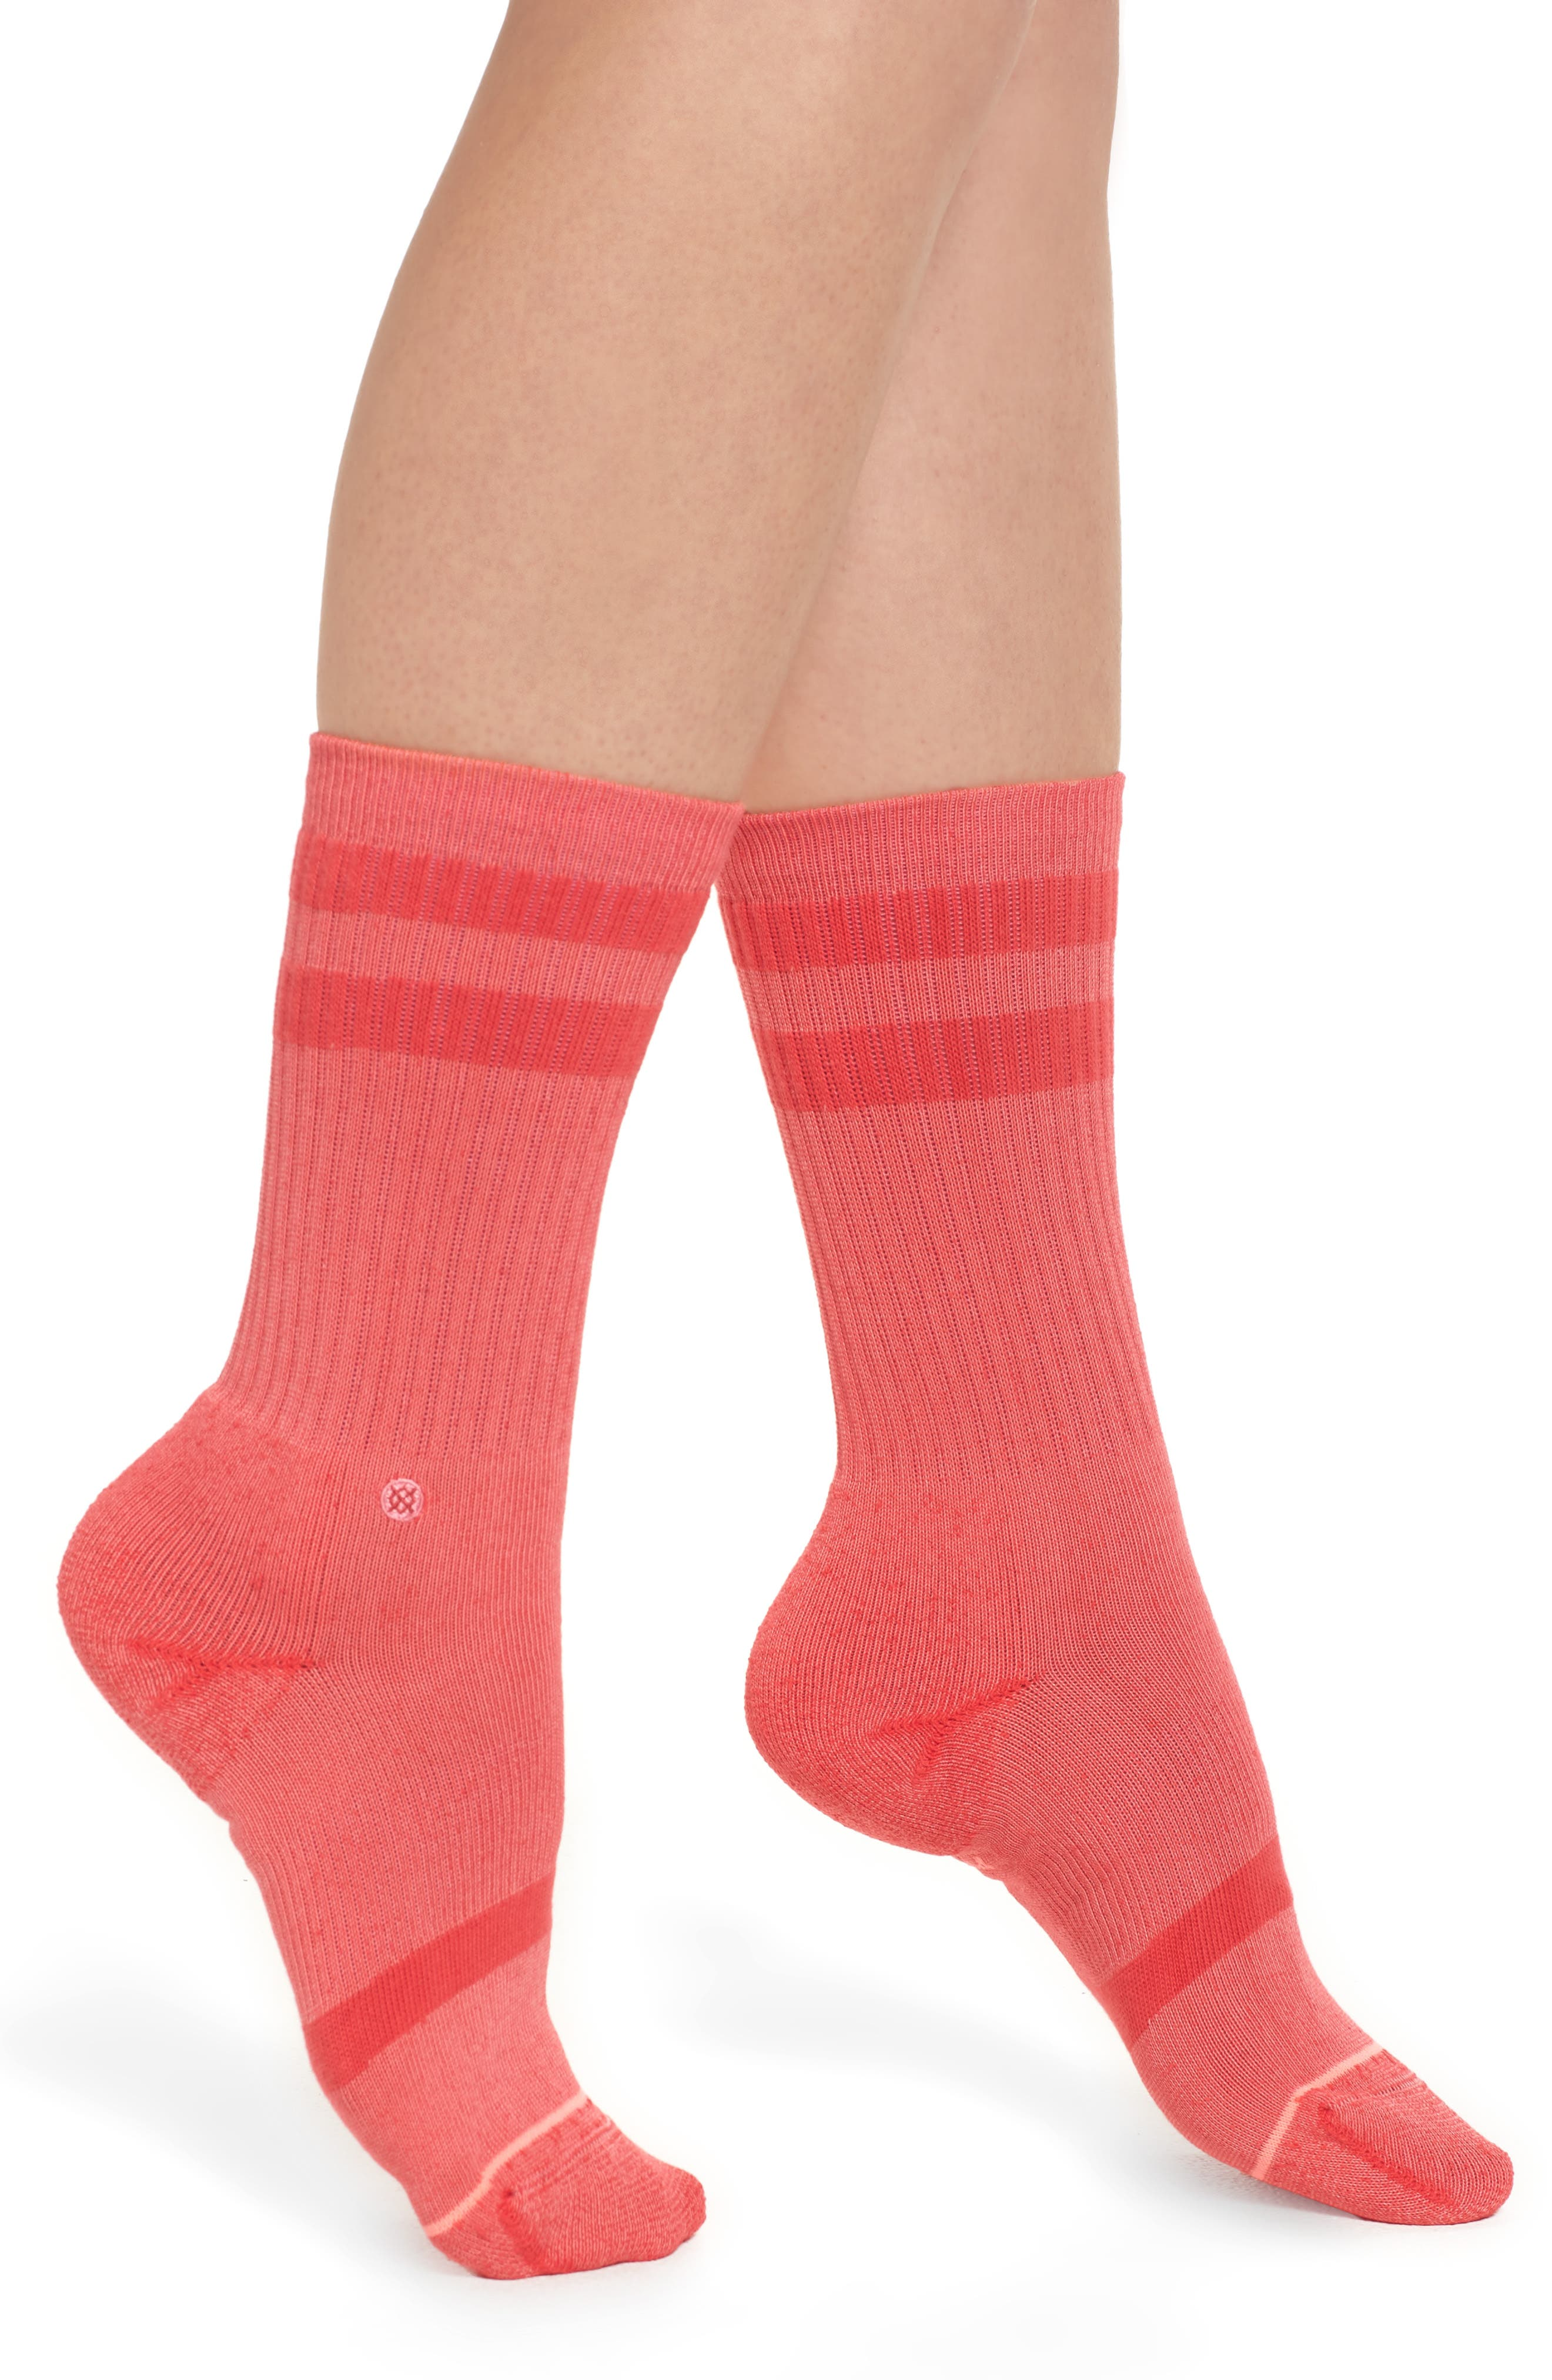 Classic Uncommon Crew Socks,                         Main,                         color, Red